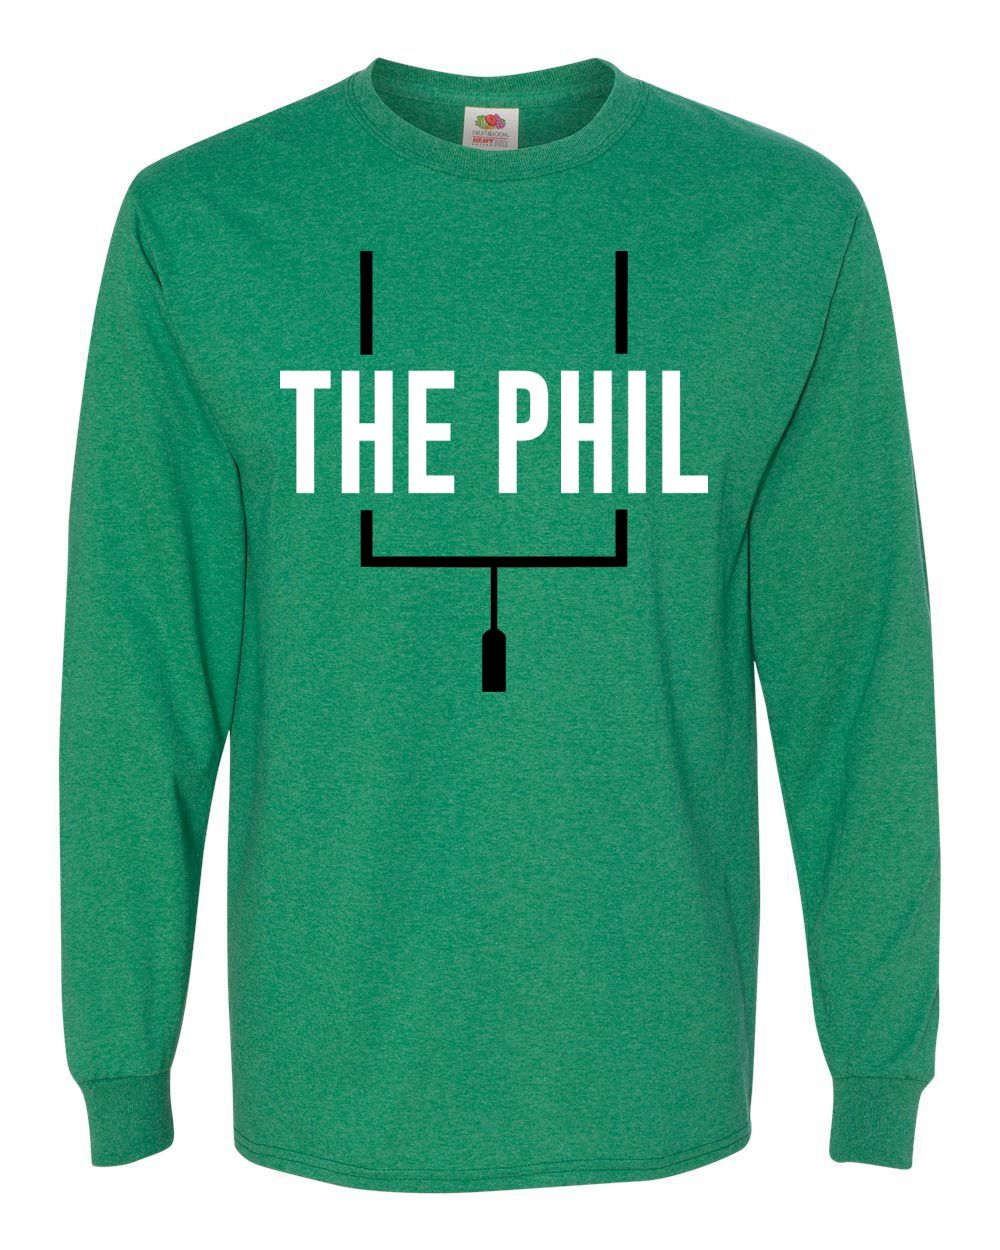 Adult The Phil Green Long Sleeve T-Shirt